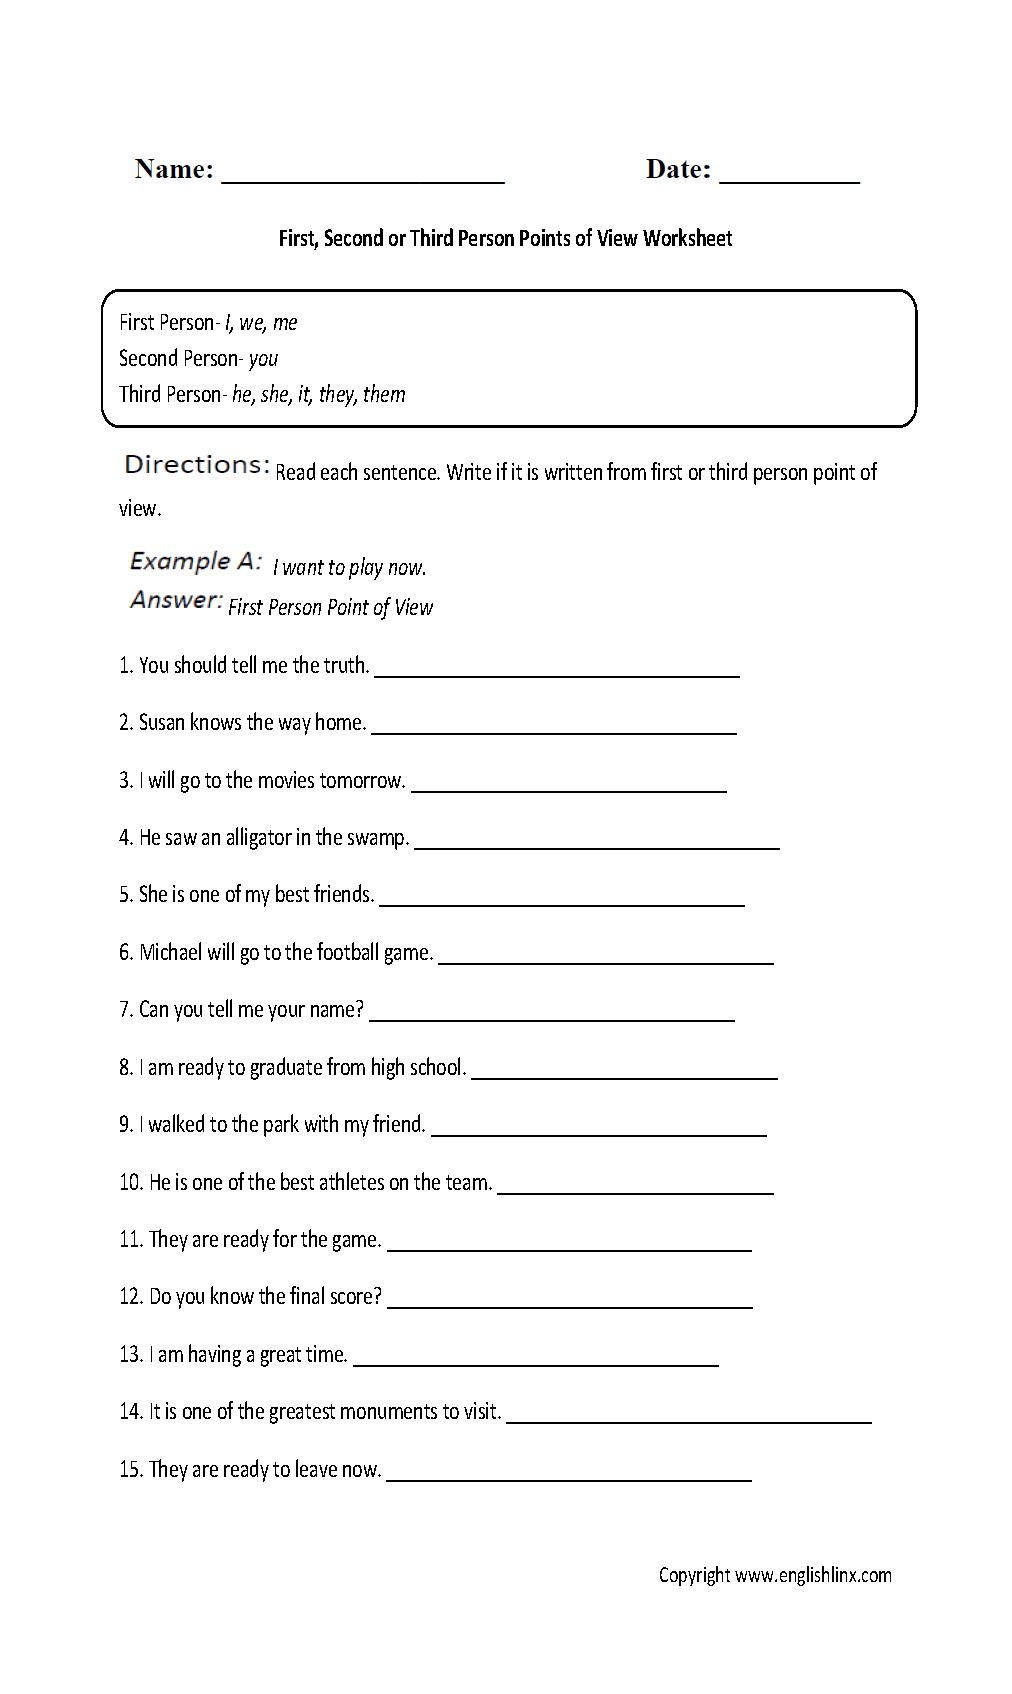 Proatmealus  Unusual Englishlinxcom  Point Of View Worksheets With Lovely Point Of View Worksheet With Archaic Context Clues Printable Worksheets Also Worksheet Integers In Addition Preposition Worksheets For Th Grade And Fall Pattern Worksheets As Well As Fractions To Percentages Worksheet Additionally Direct And Indirect Worksheets From Englishlinxcom With Proatmealus  Lovely Englishlinxcom  Point Of View Worksheets With Archaic Point Of View Worksheet And Unusual Context Clues Printable Worksheets Also Worksheet Integers In Addition Preposition Worksheets For Th Grade From Englishlinxcom